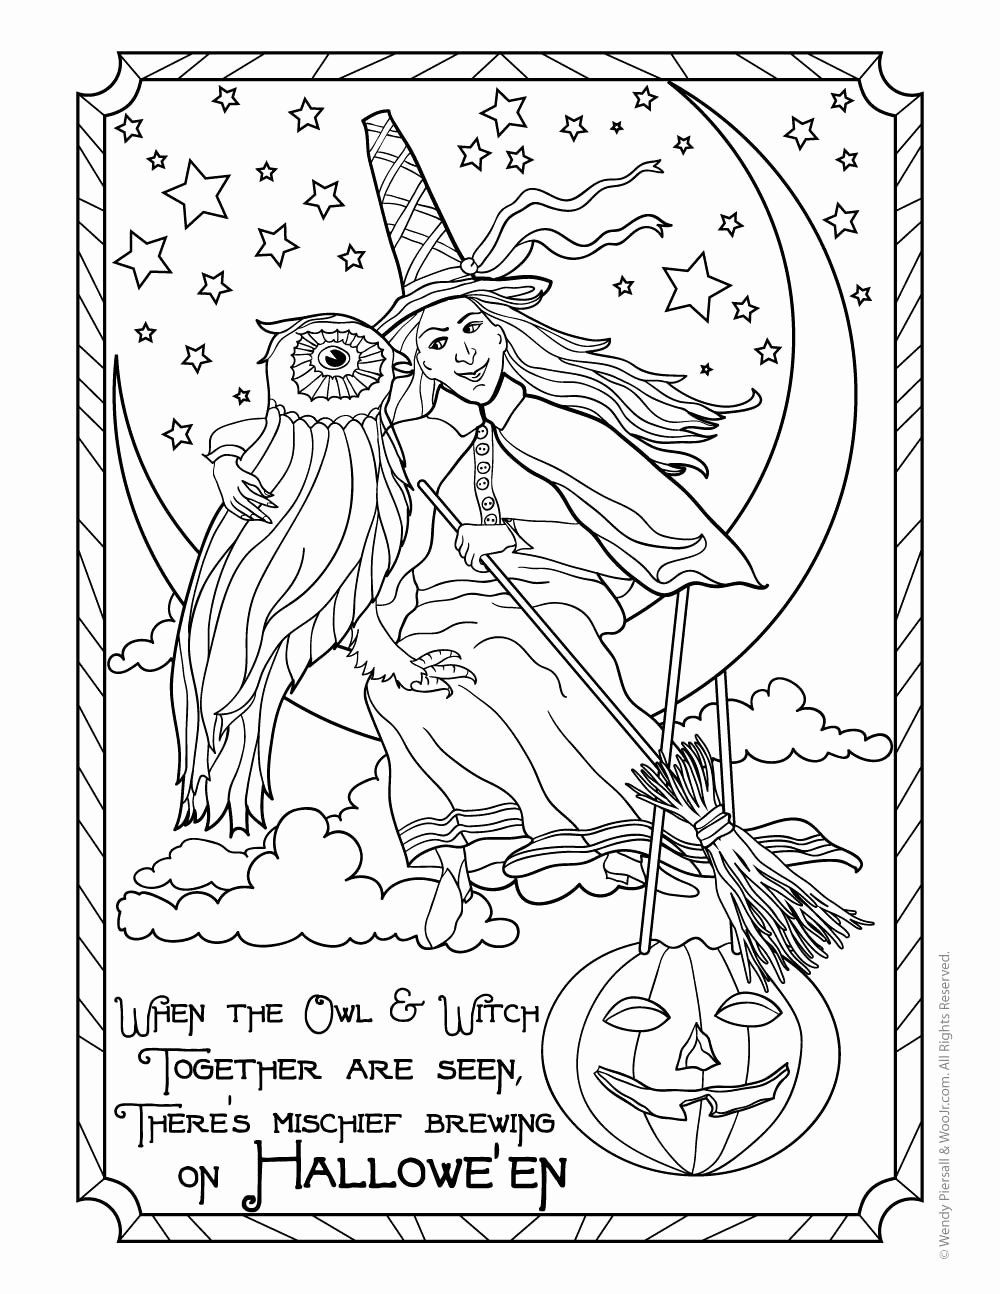 Witch Coloring Pages For Adults Lovely Witch And Owl Vintage Halloween Postcard Coloring In 2020 Halloween Coloring Sheets Halloween Coloring Pages Owl Coloring Pages